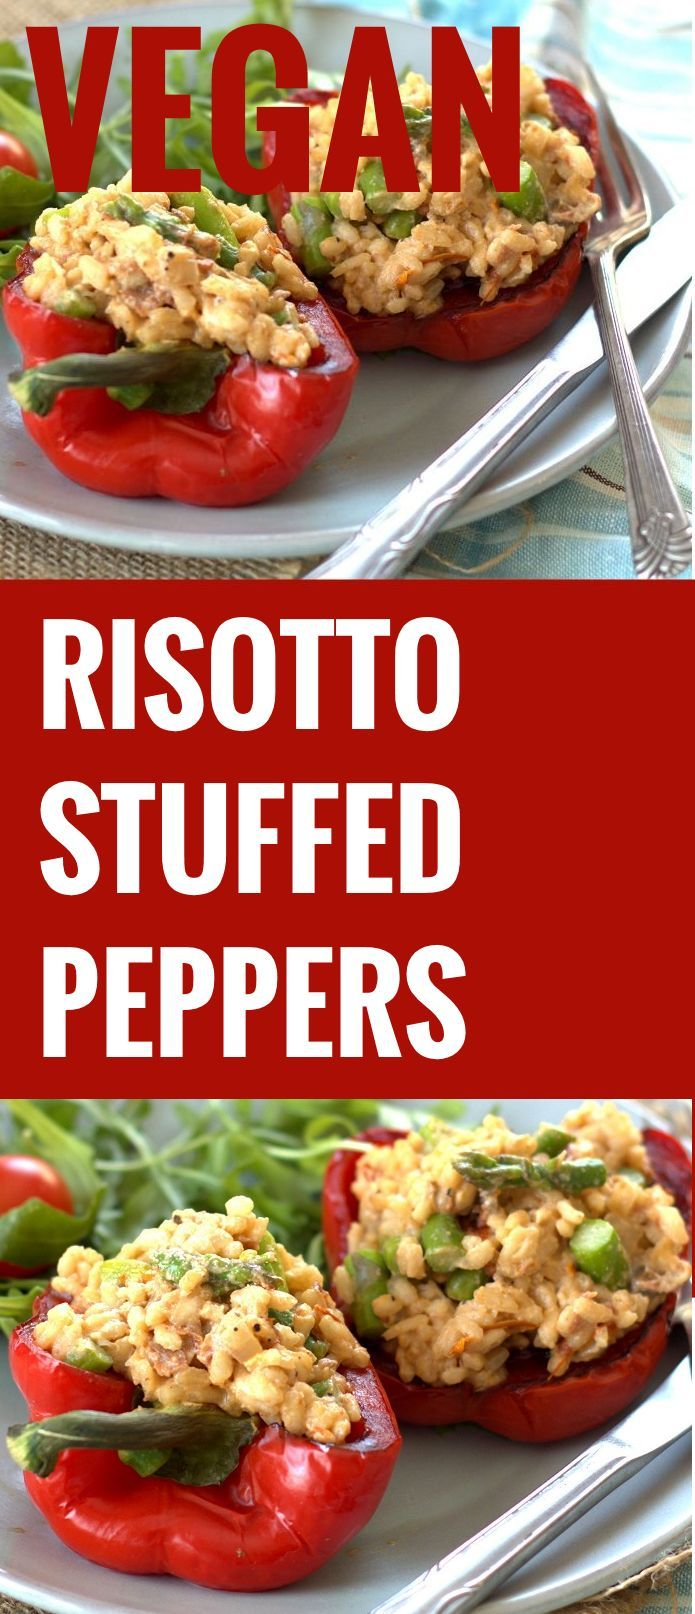 Creamy Vegan Risotto Stuffed Peppers with Asparagus and Sun-Dried Tomatoes